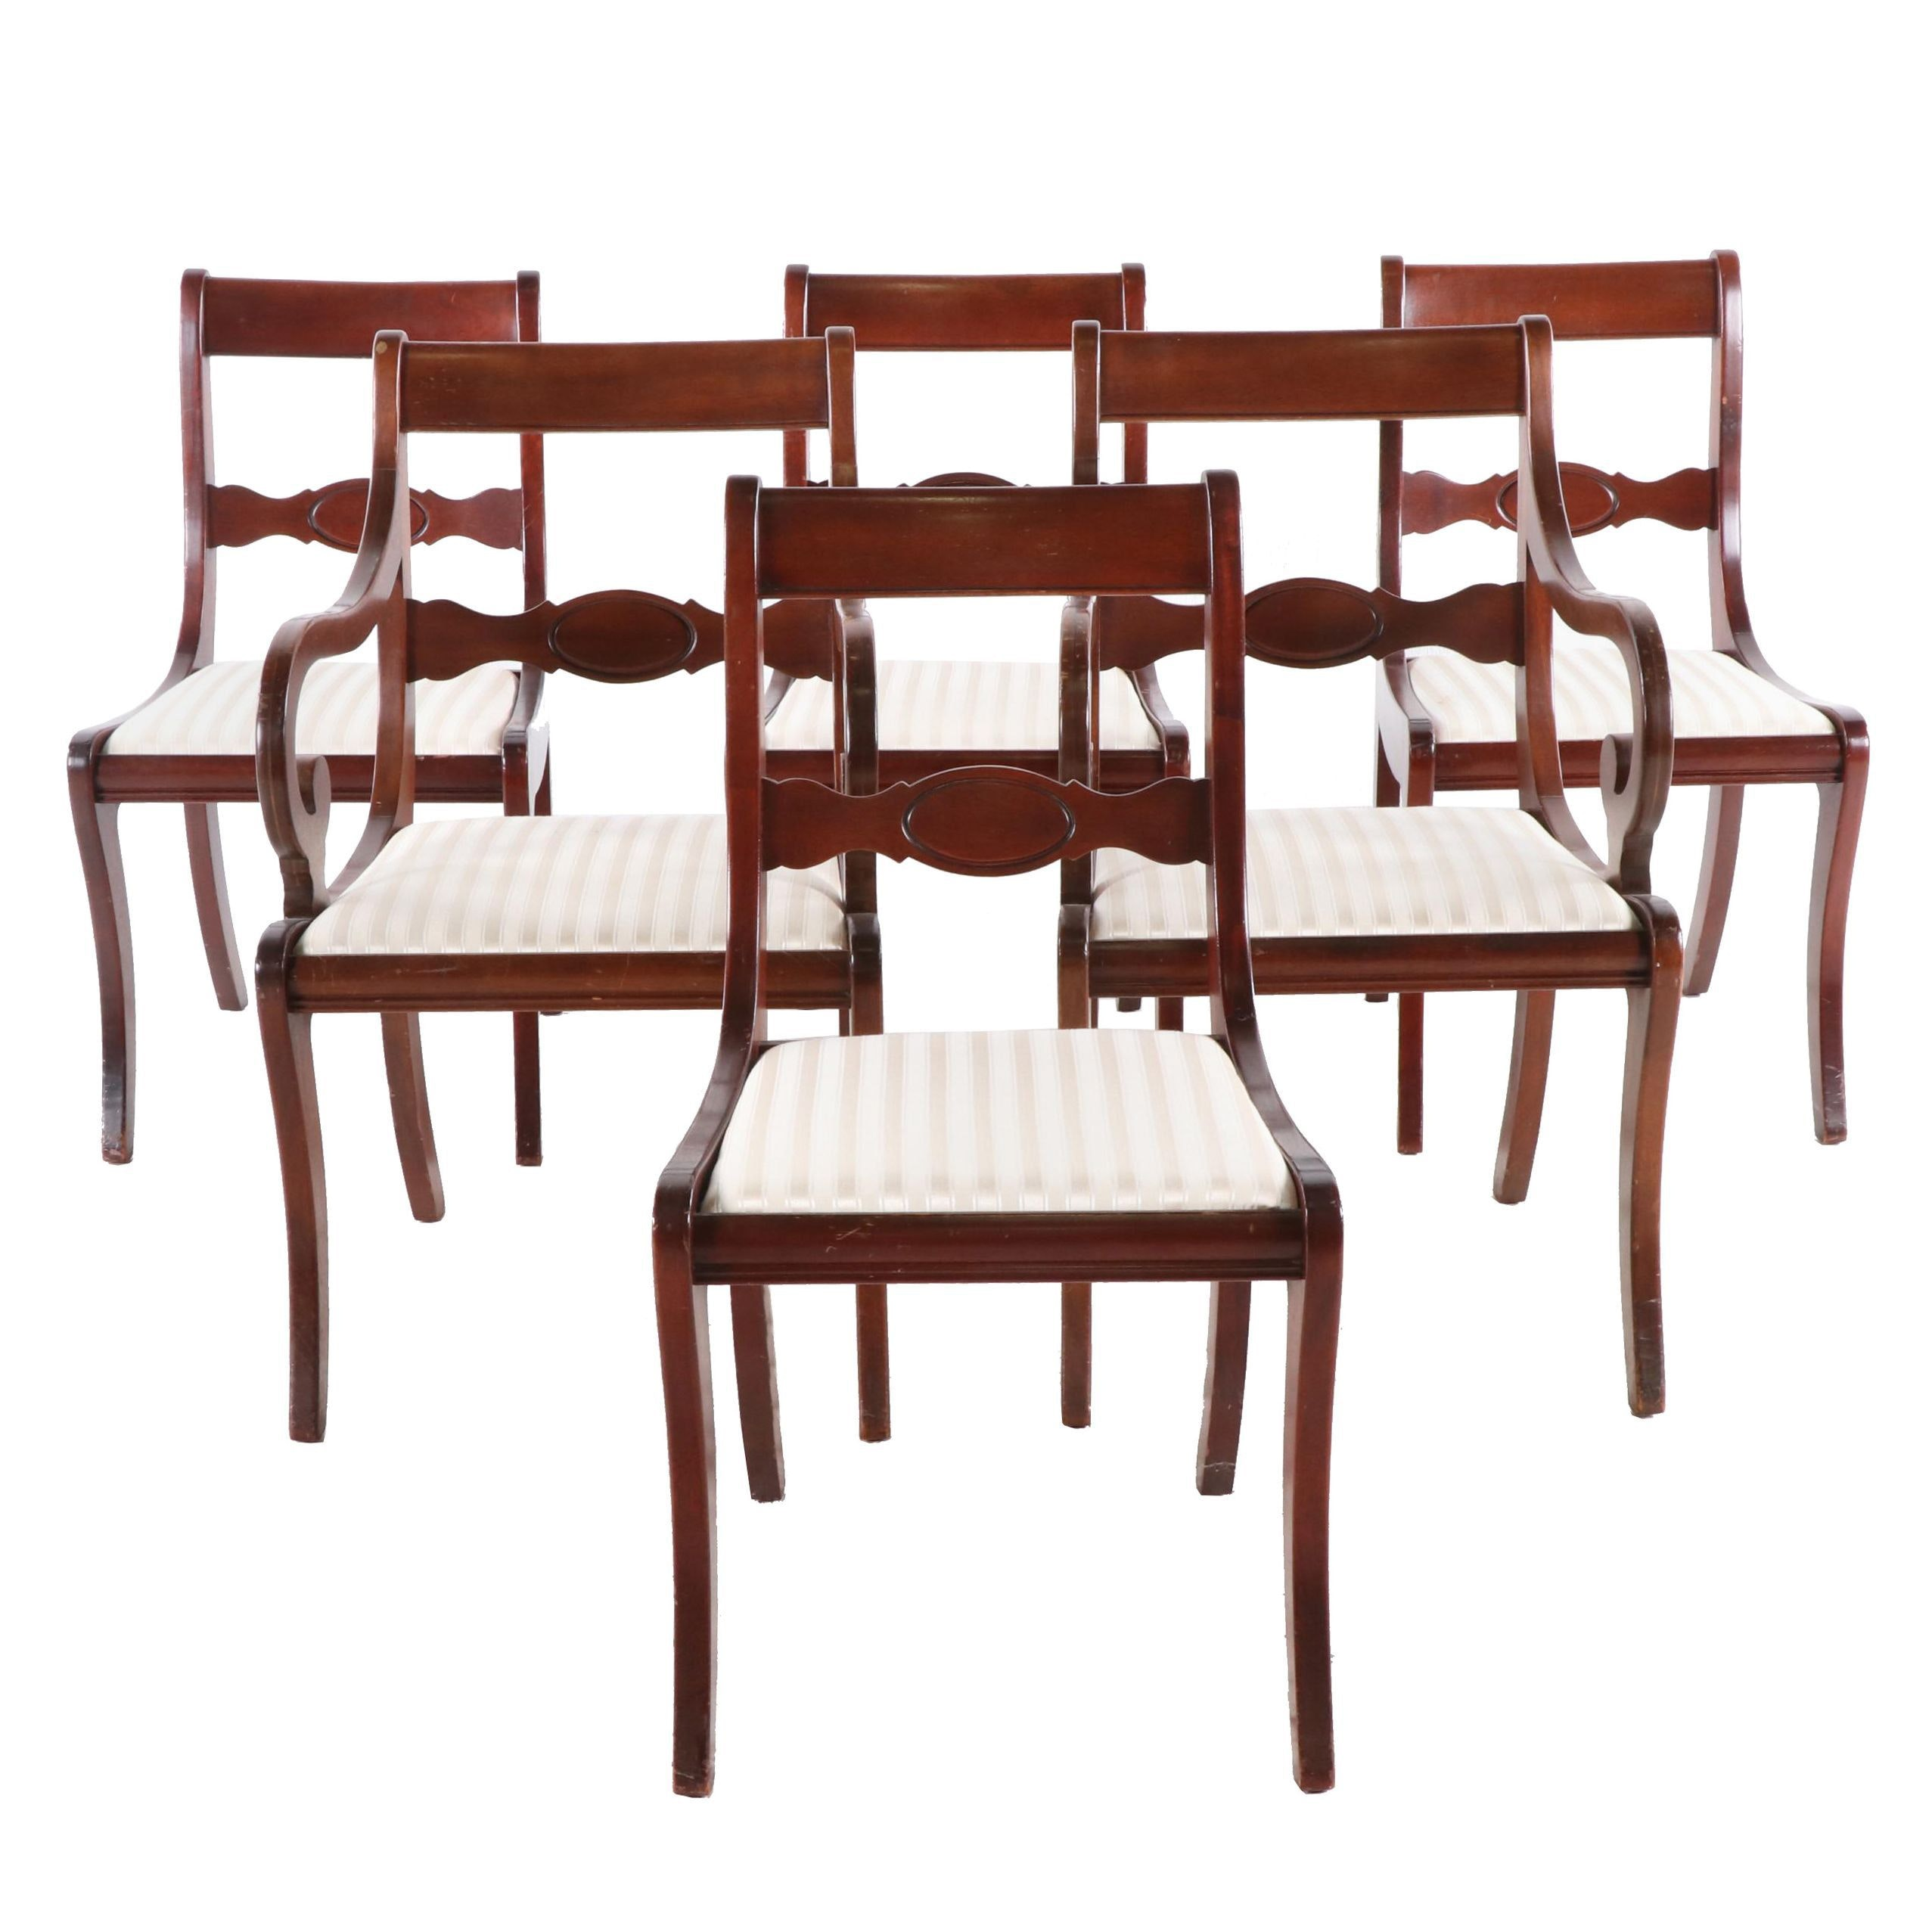 Georgetown Galleries Regency Style Dining Chairs, Mid 20th Century